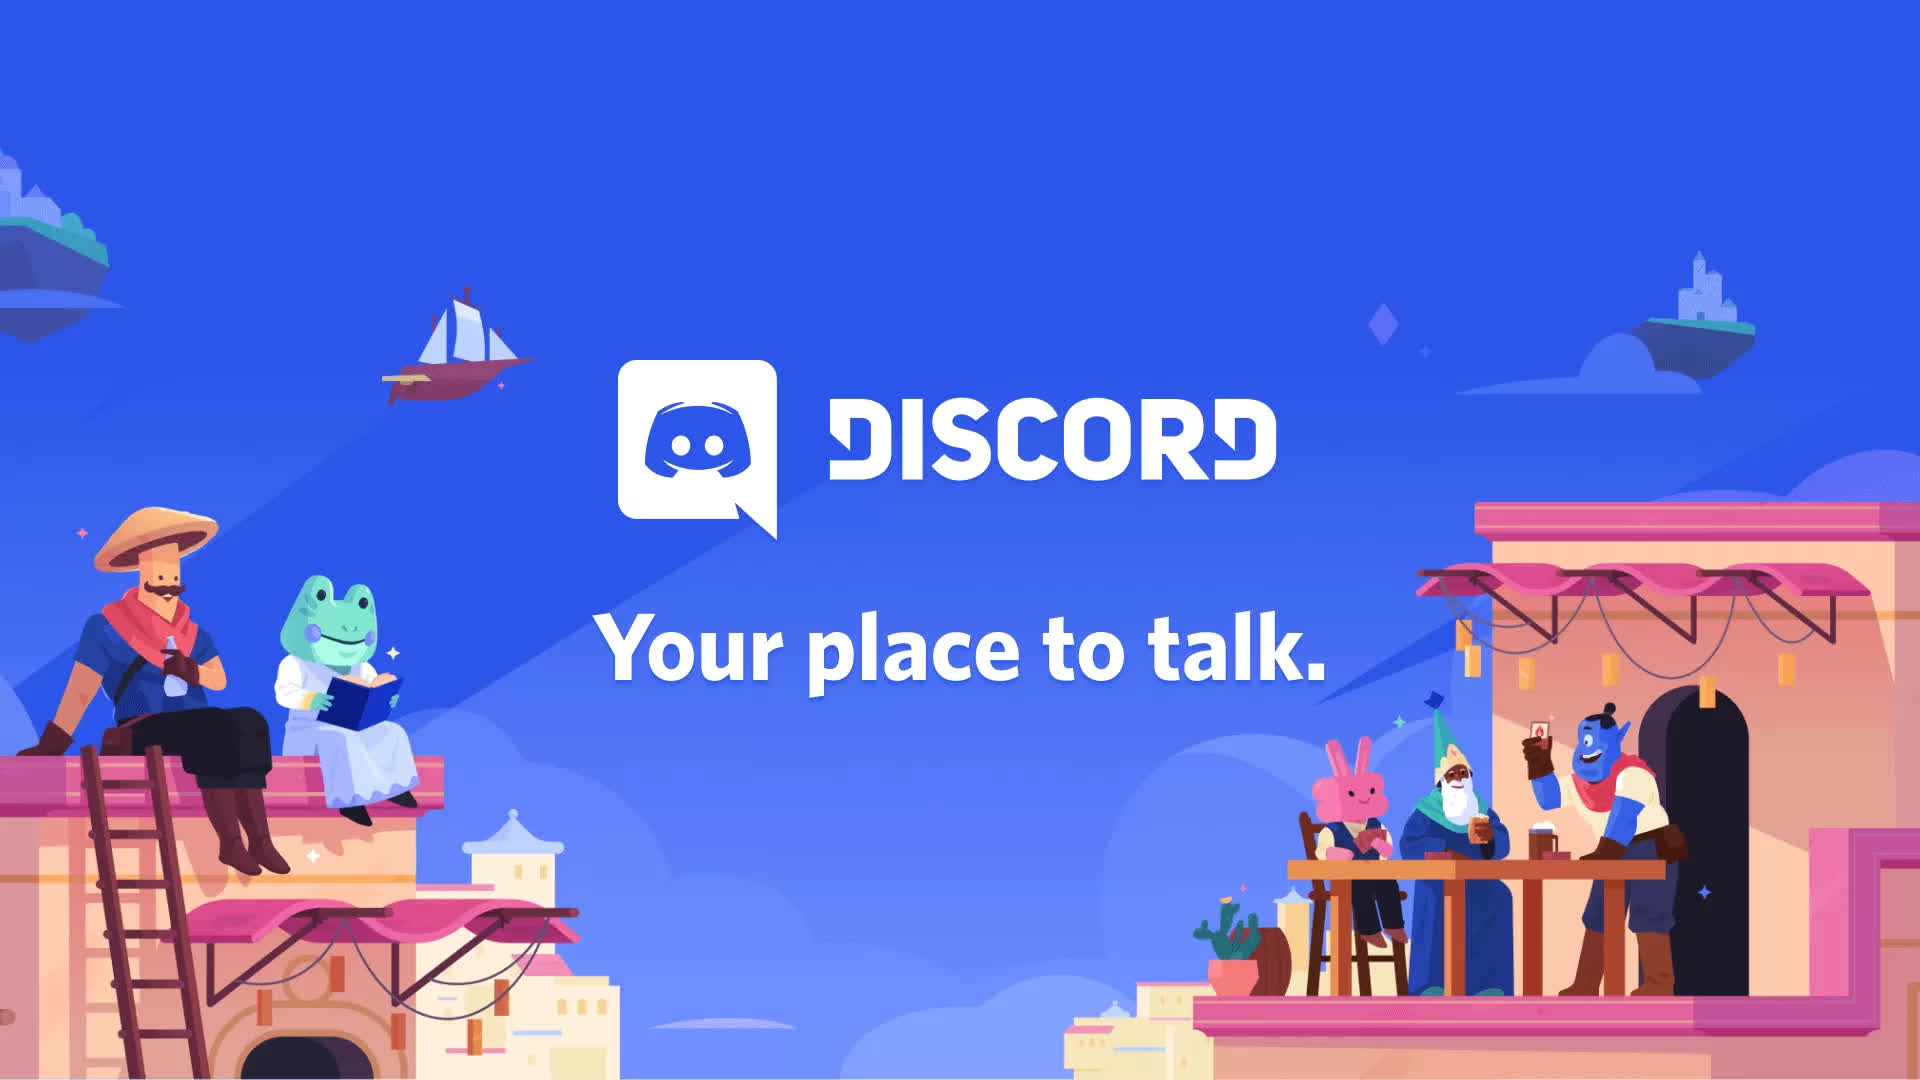 Discord platform is coming to PlayStation in early 2022